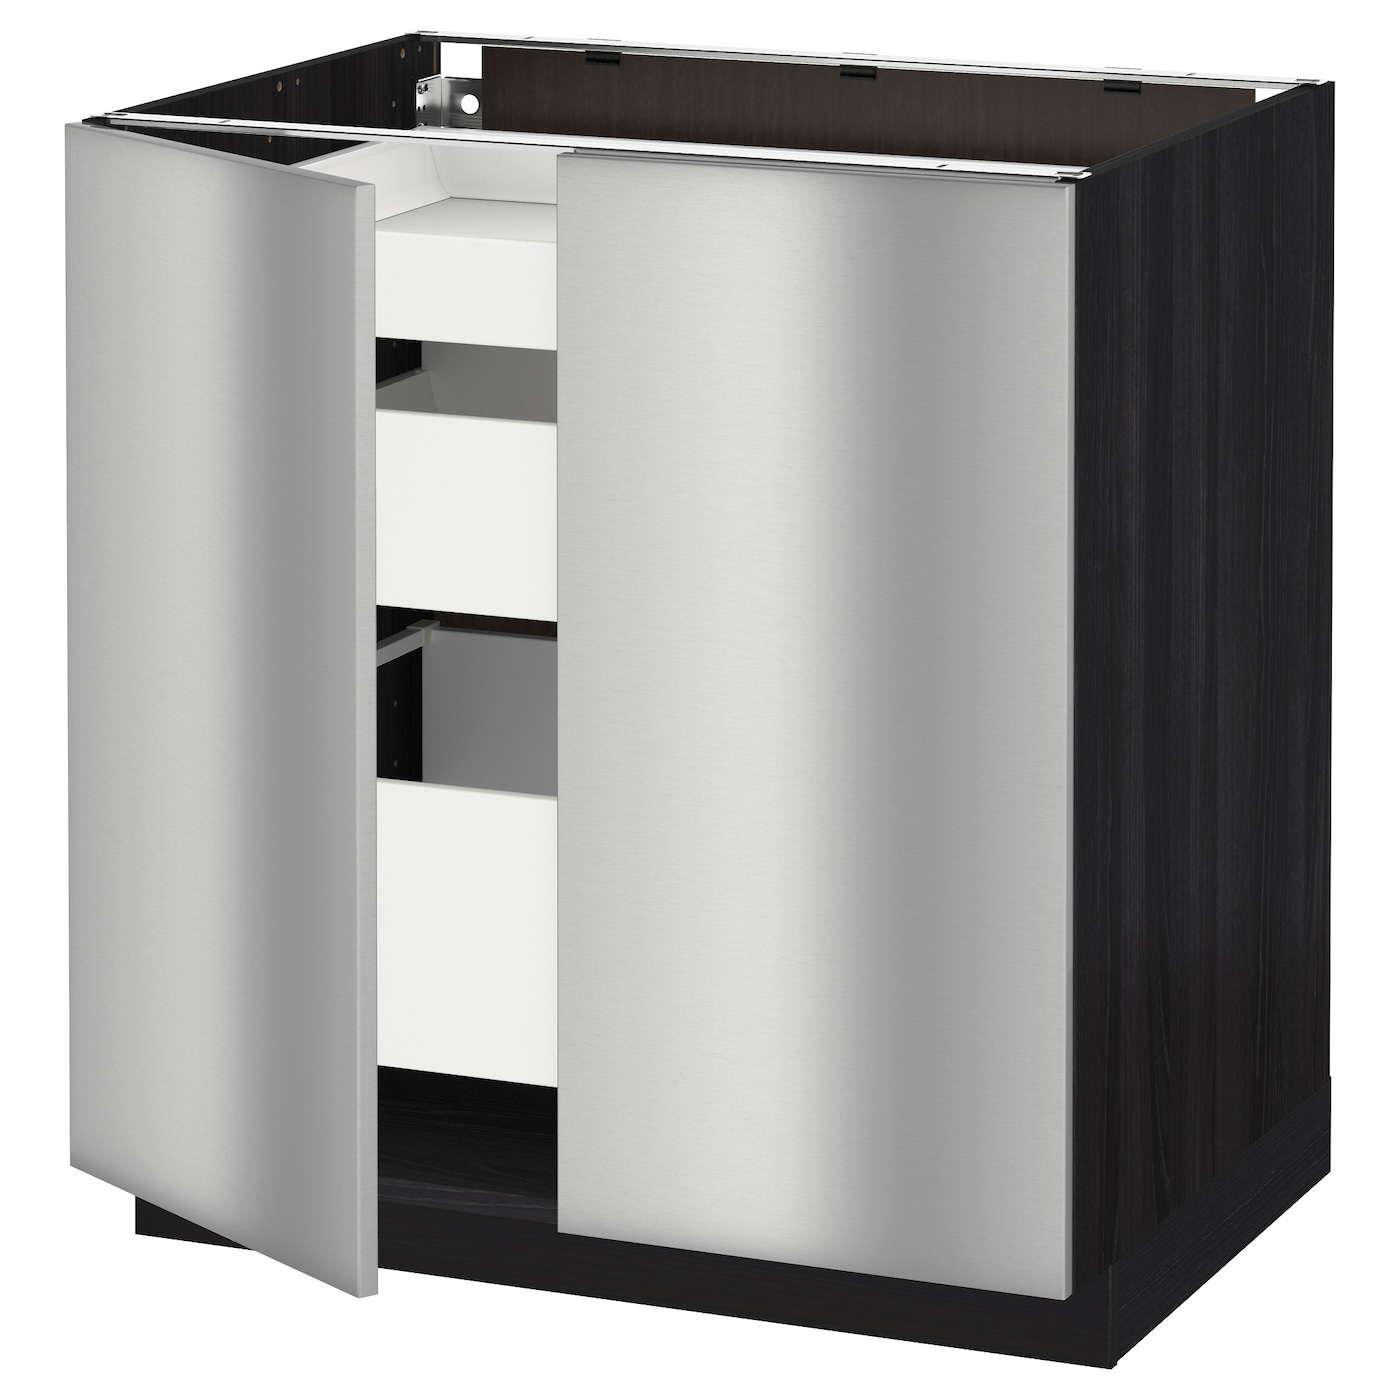 Metod maximera base cabinet w 2 doors 3 drawers black for Stainless steel kitchen base cabinets